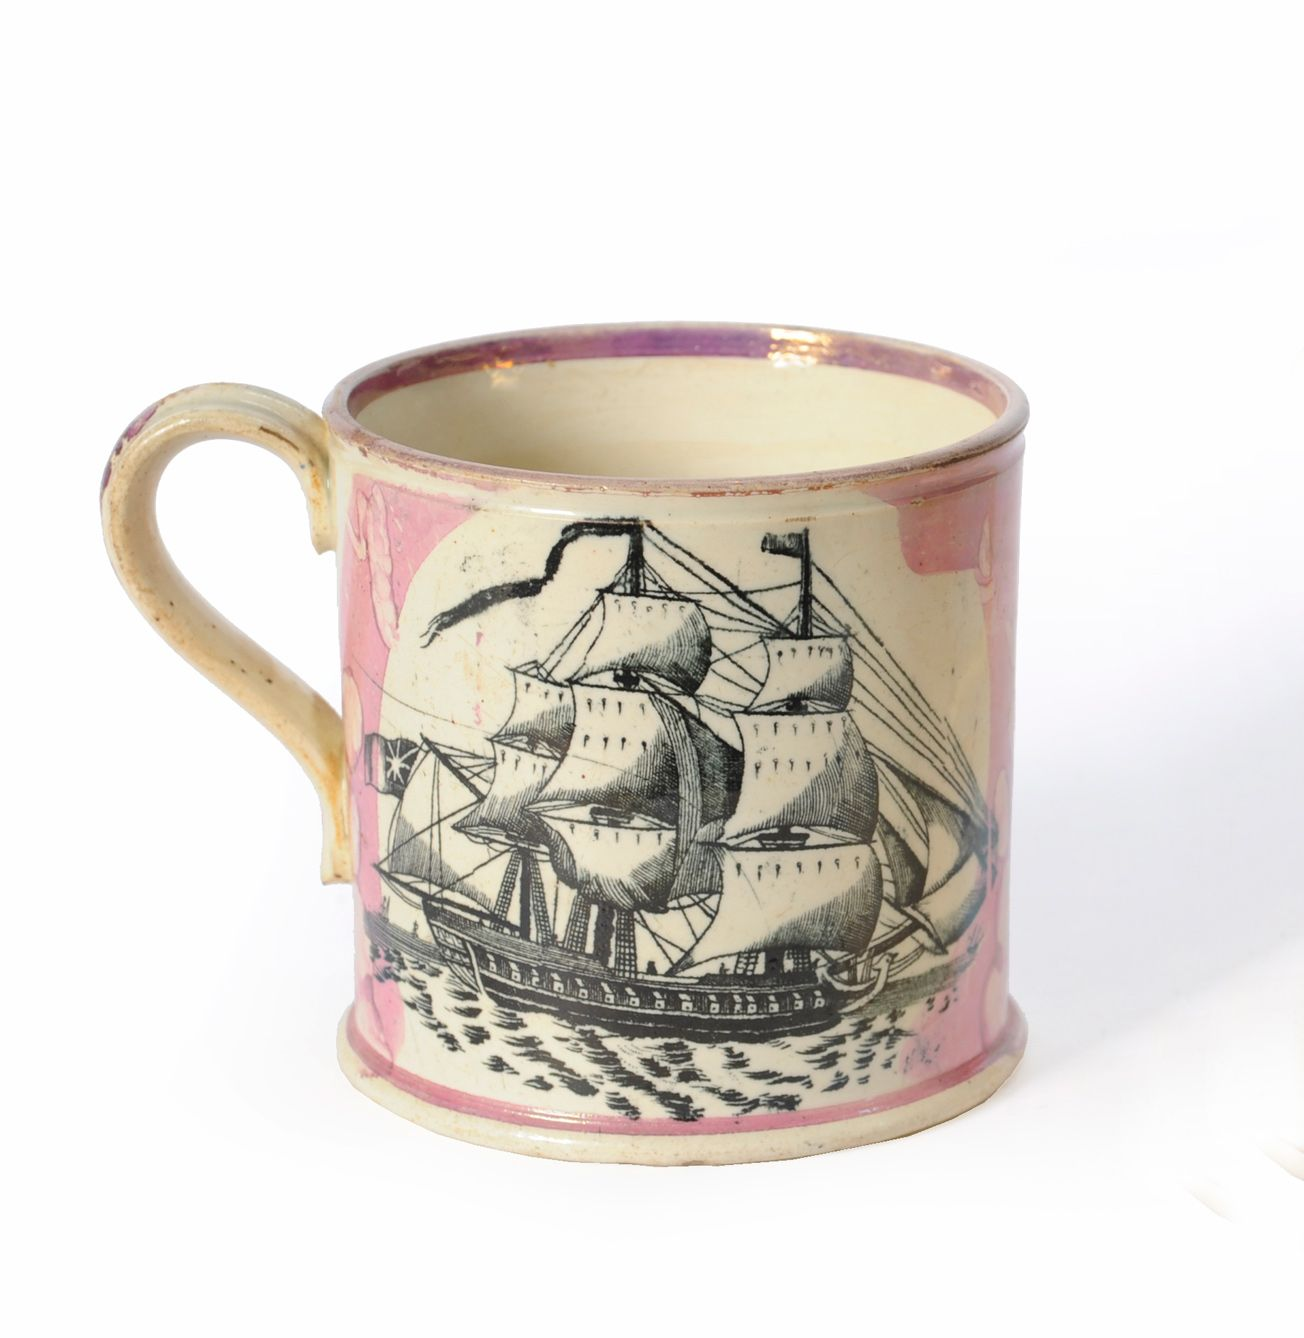 A Sunderland Lustre Pottery Mug, High Level Bridge Newcastle Upon Tyne, circa 1850. Printed on one side with a view of the bridge, titled, within splodged pink borders, on the other with a three-masted man o'war, C shape strap handle. I am in serious love with this mug! I need it!